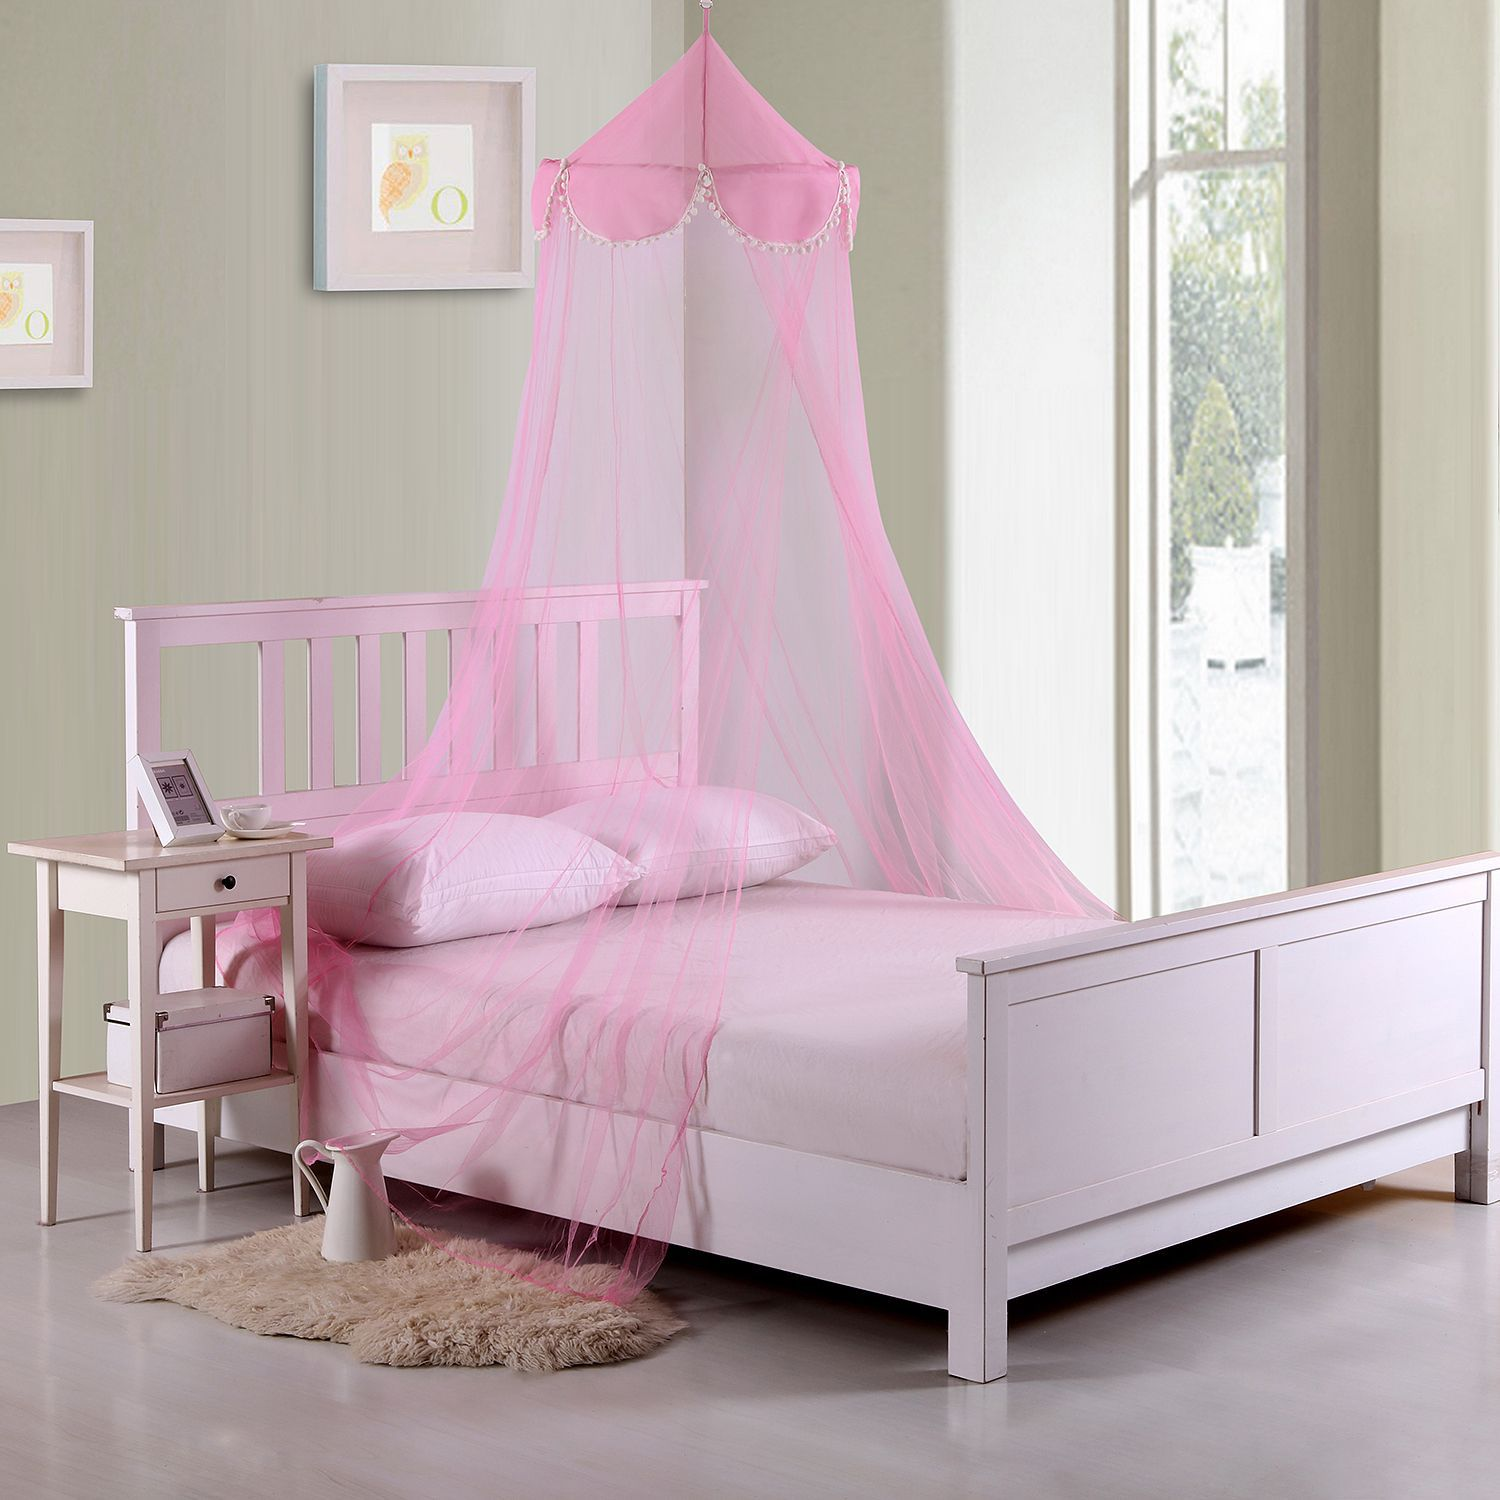 Sheer Pom Pom Collapsible Hoop Kids Bed Canopy Pink